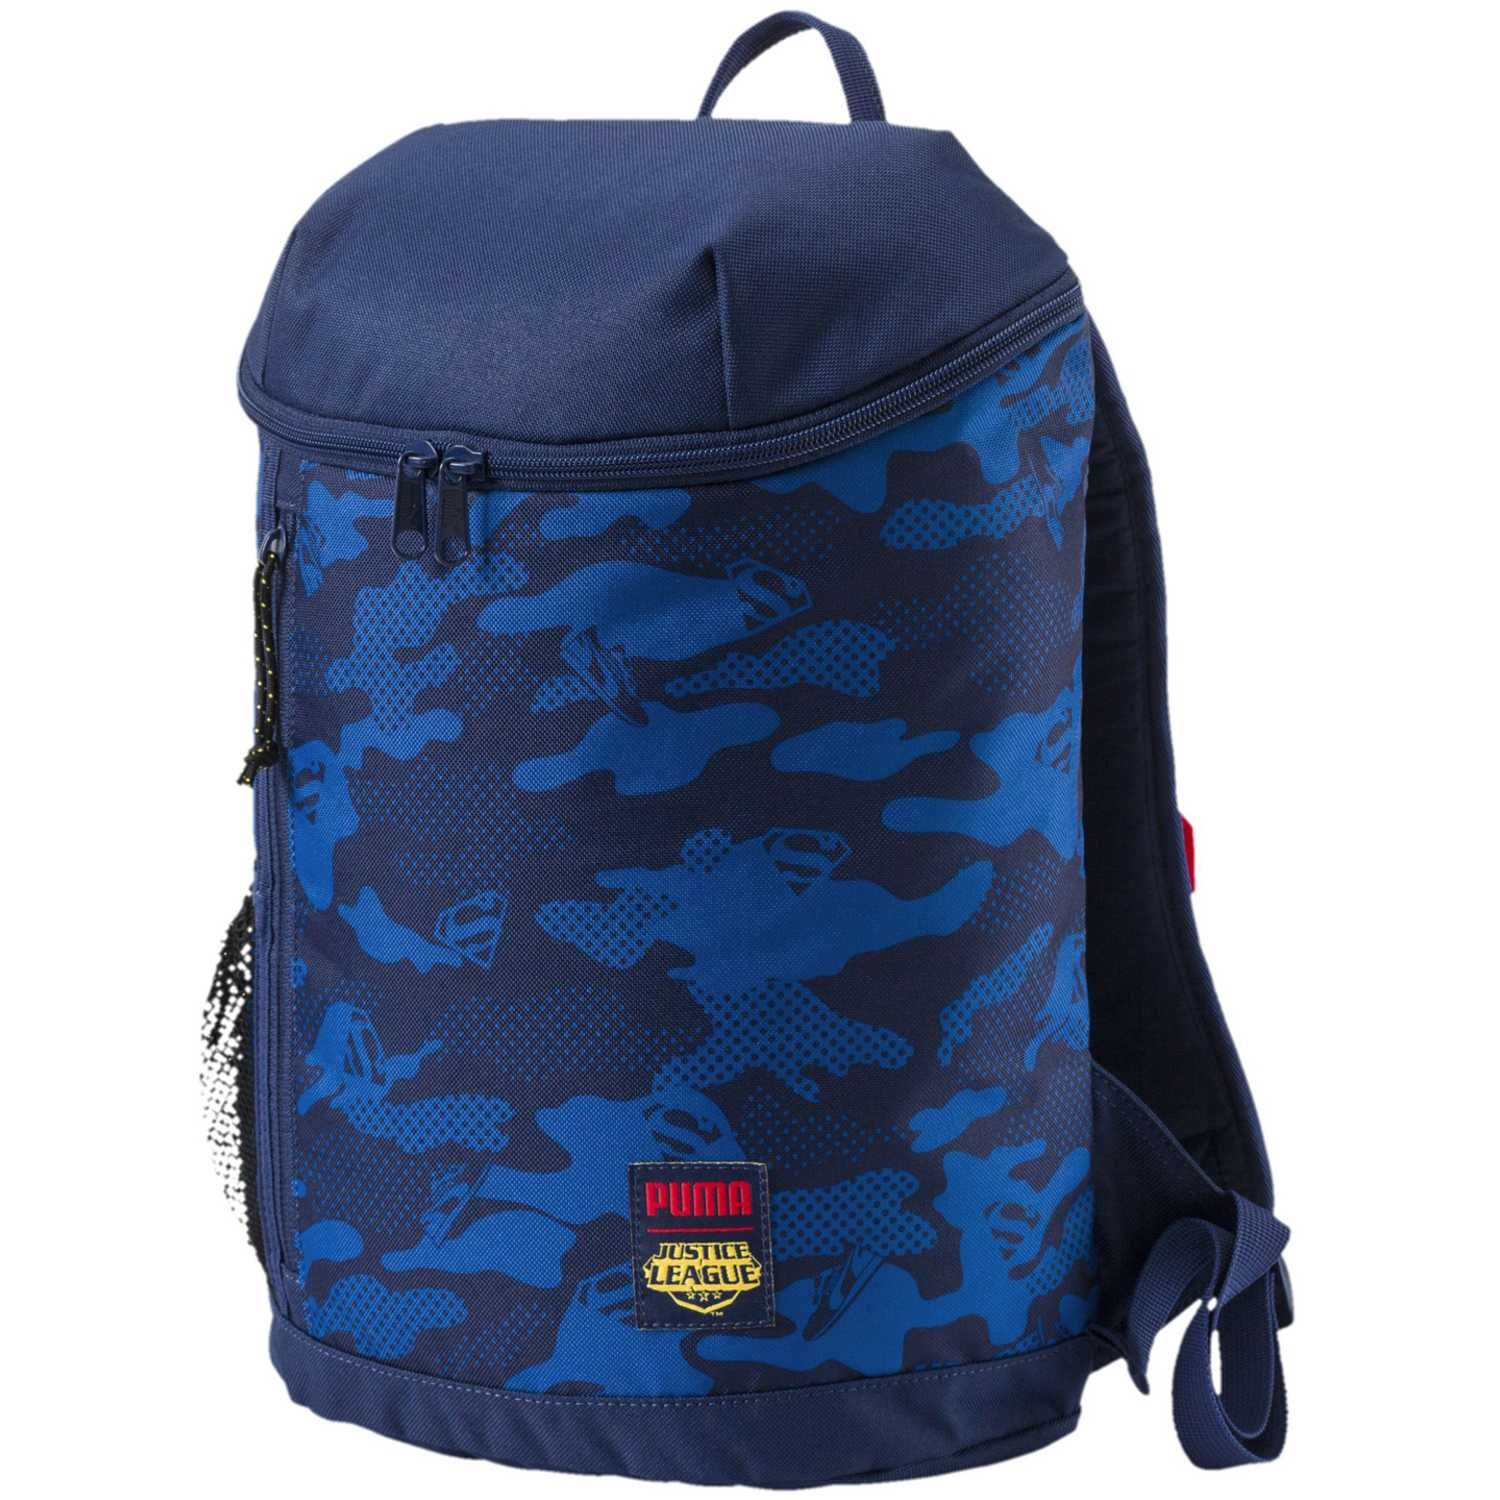 Mochila de Niño Puma Azul justice league hero backpack (superman)